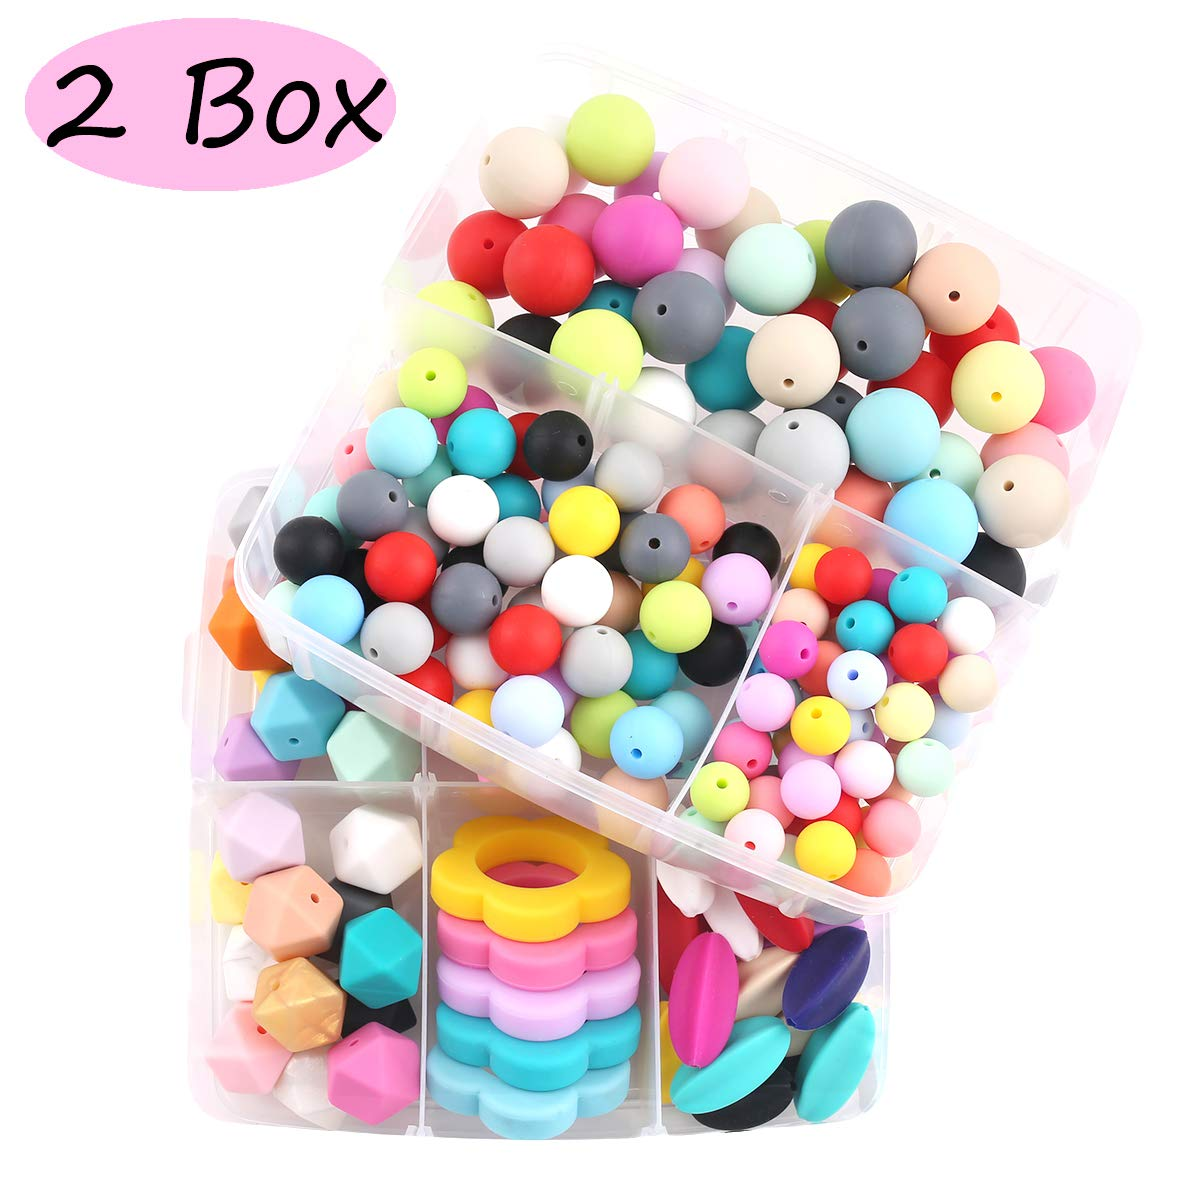 Promise Babe 2 Box Nursing Jewelry Silicone Teether DIY Combination Package Sensory Teething Beads DIY Teething Necklace for mom